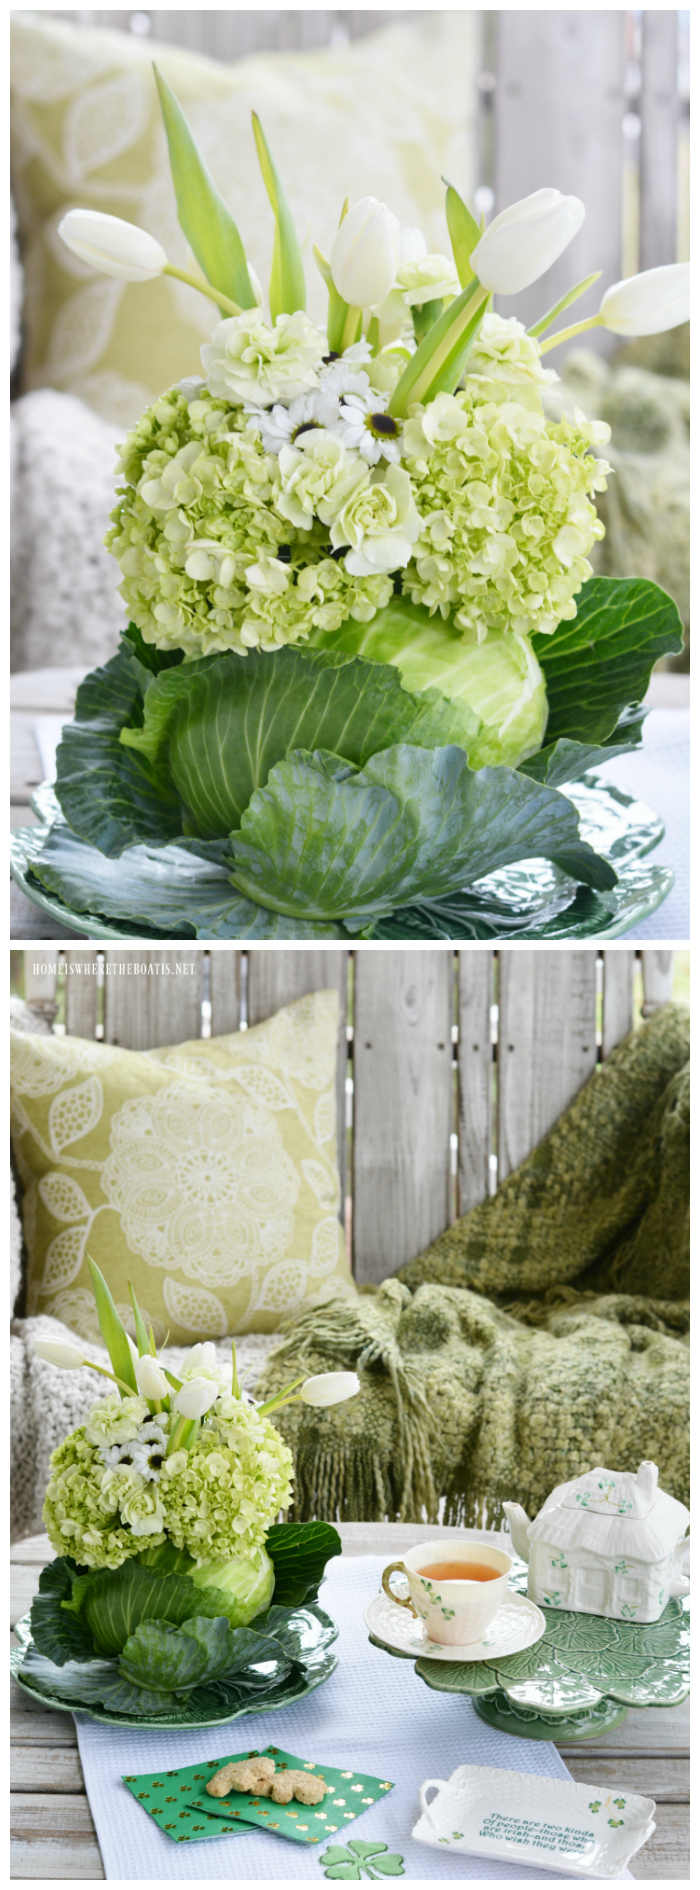 Blooming Cabbage Vase DIY | ©homeiswheretheboatis.net #stpatricksday #flowers #cabbage